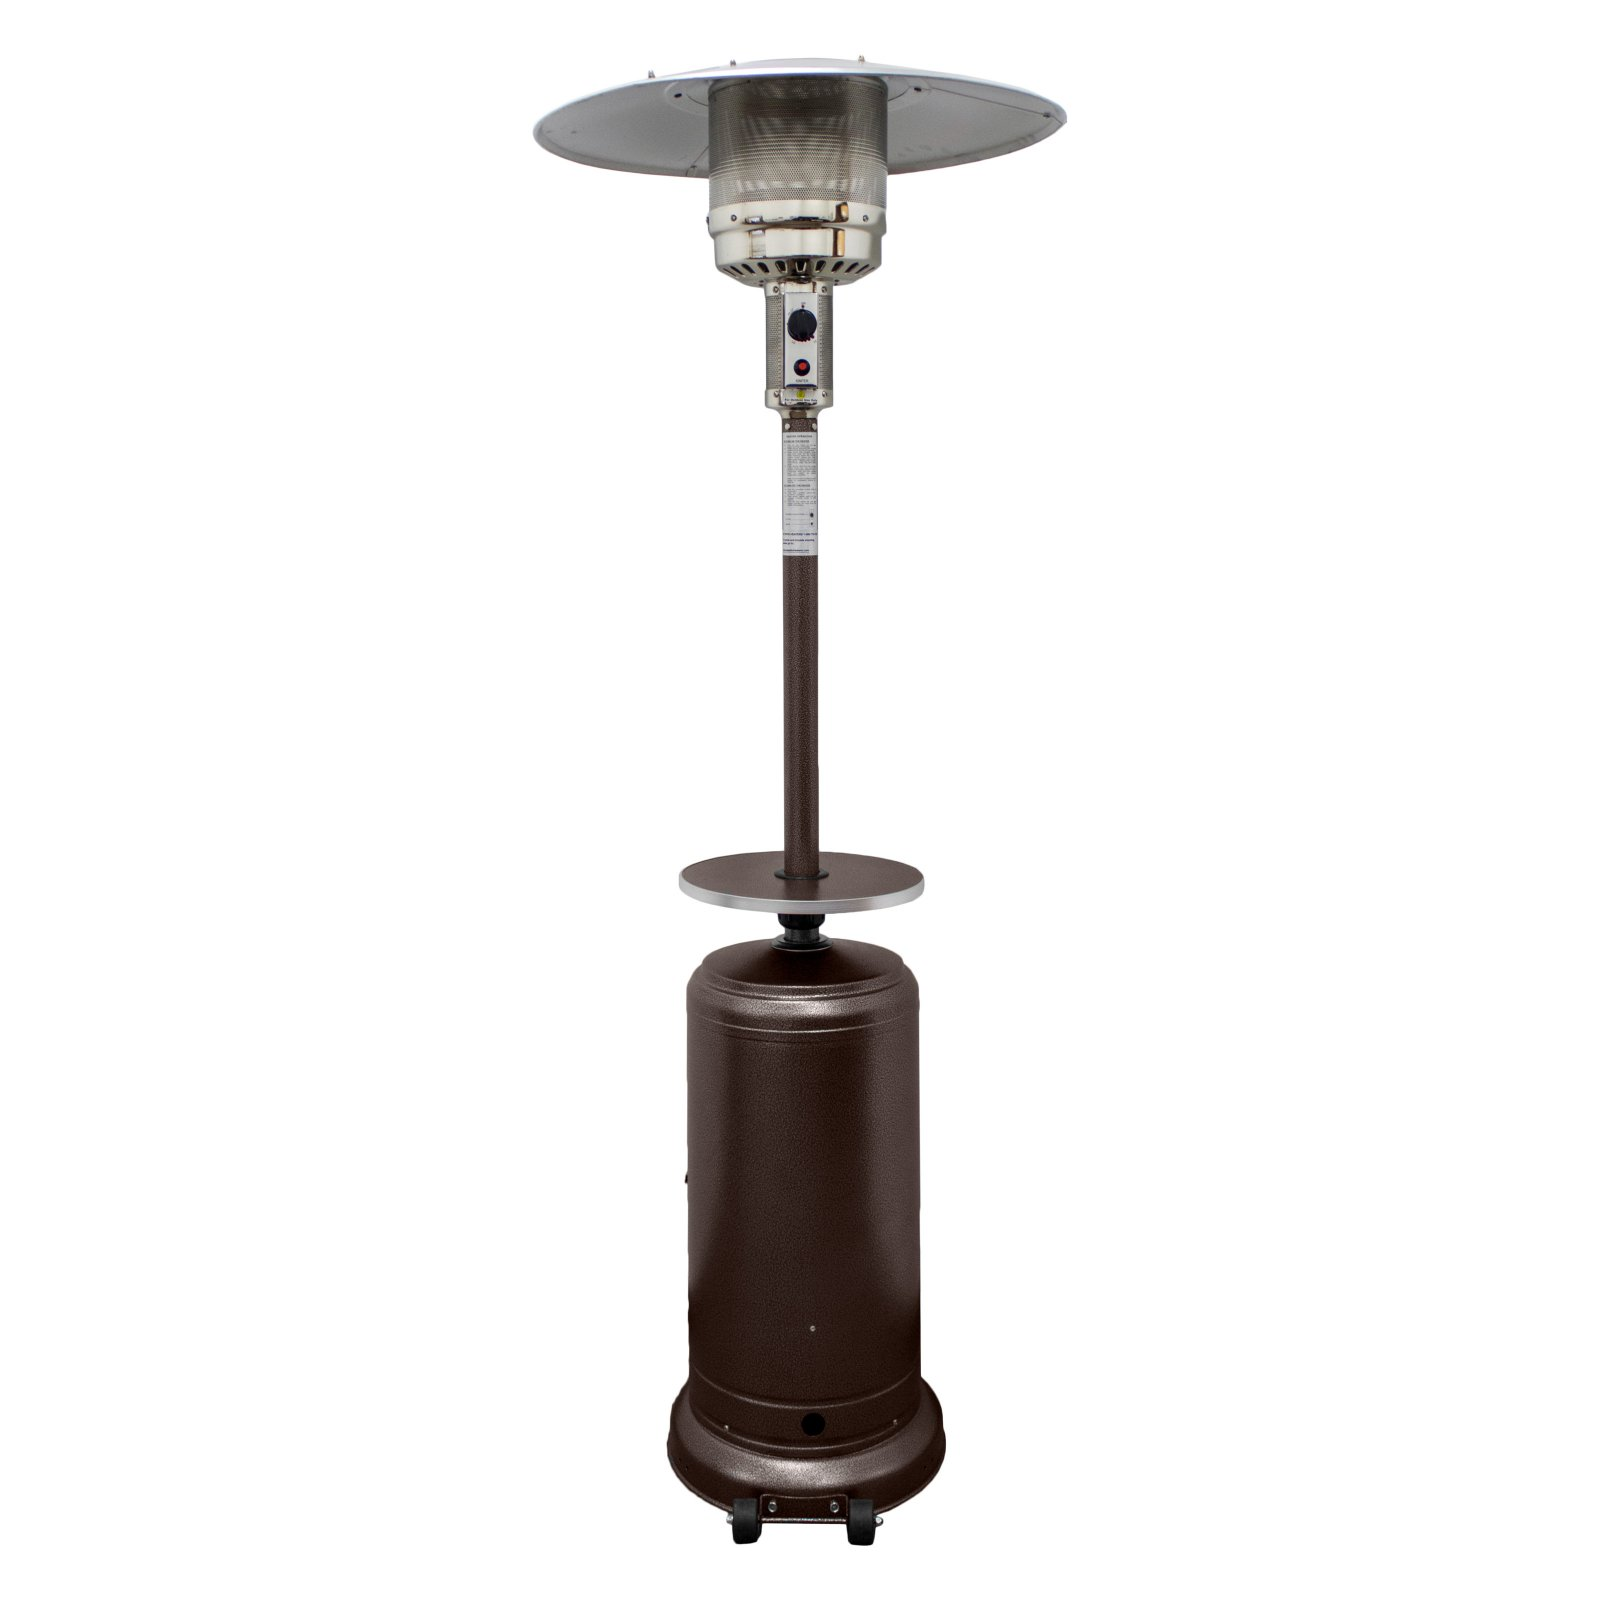 Hiland Tall Hammered Bronze Patio Heater with Table - Walmart.com